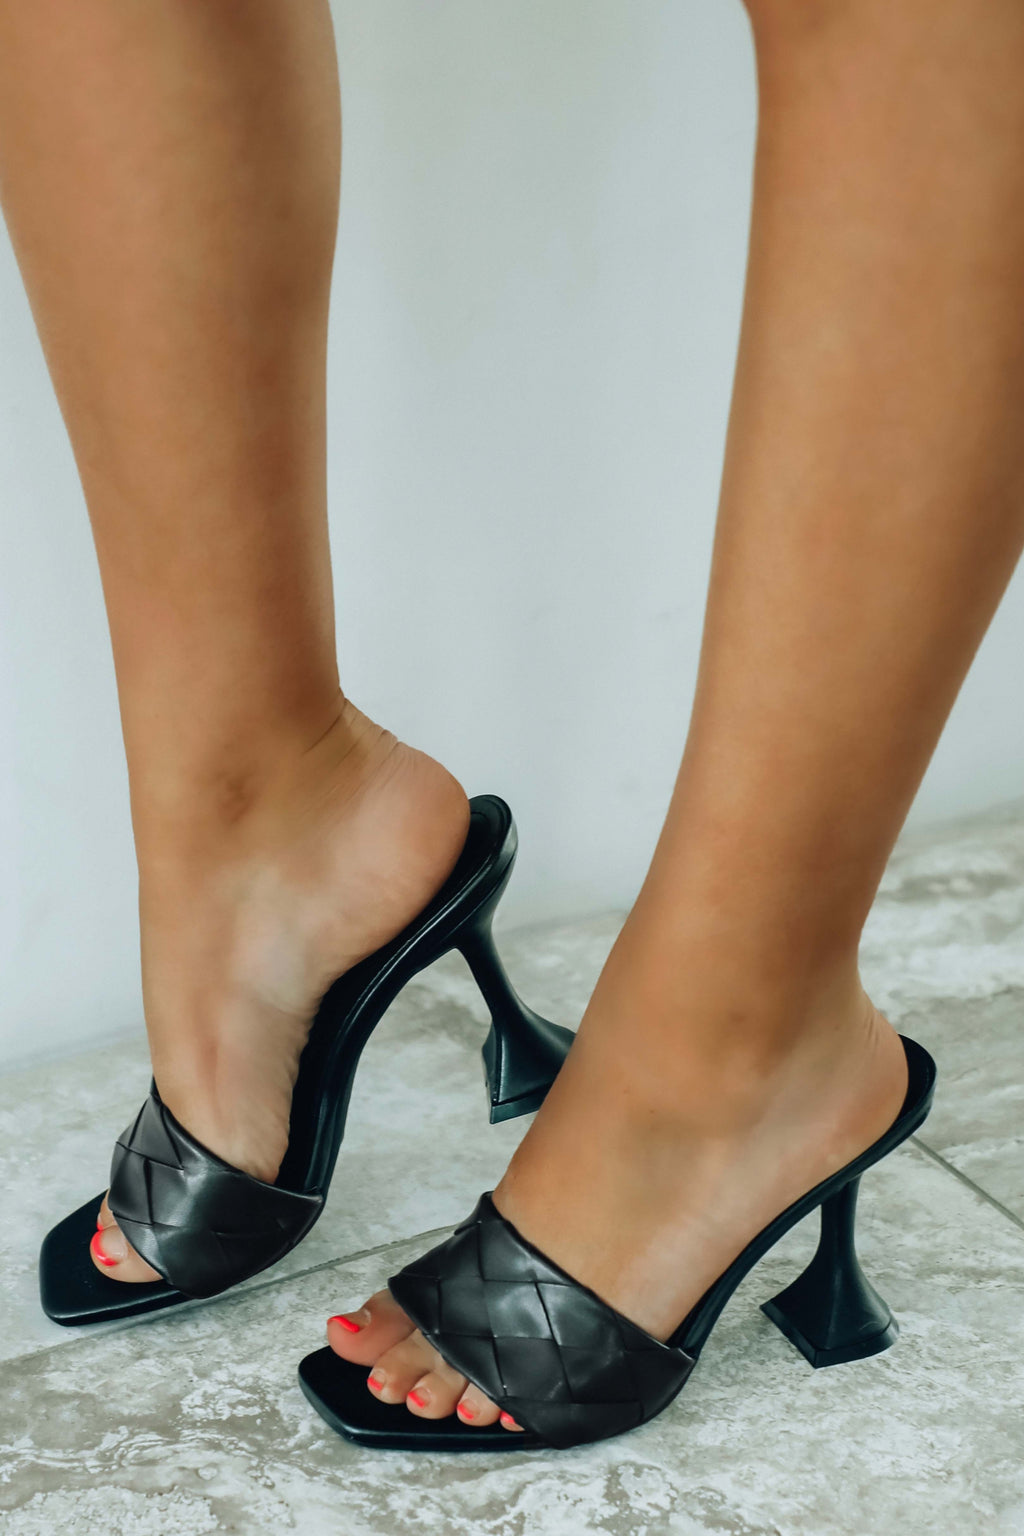 Spur Of The Moment Heels: Black